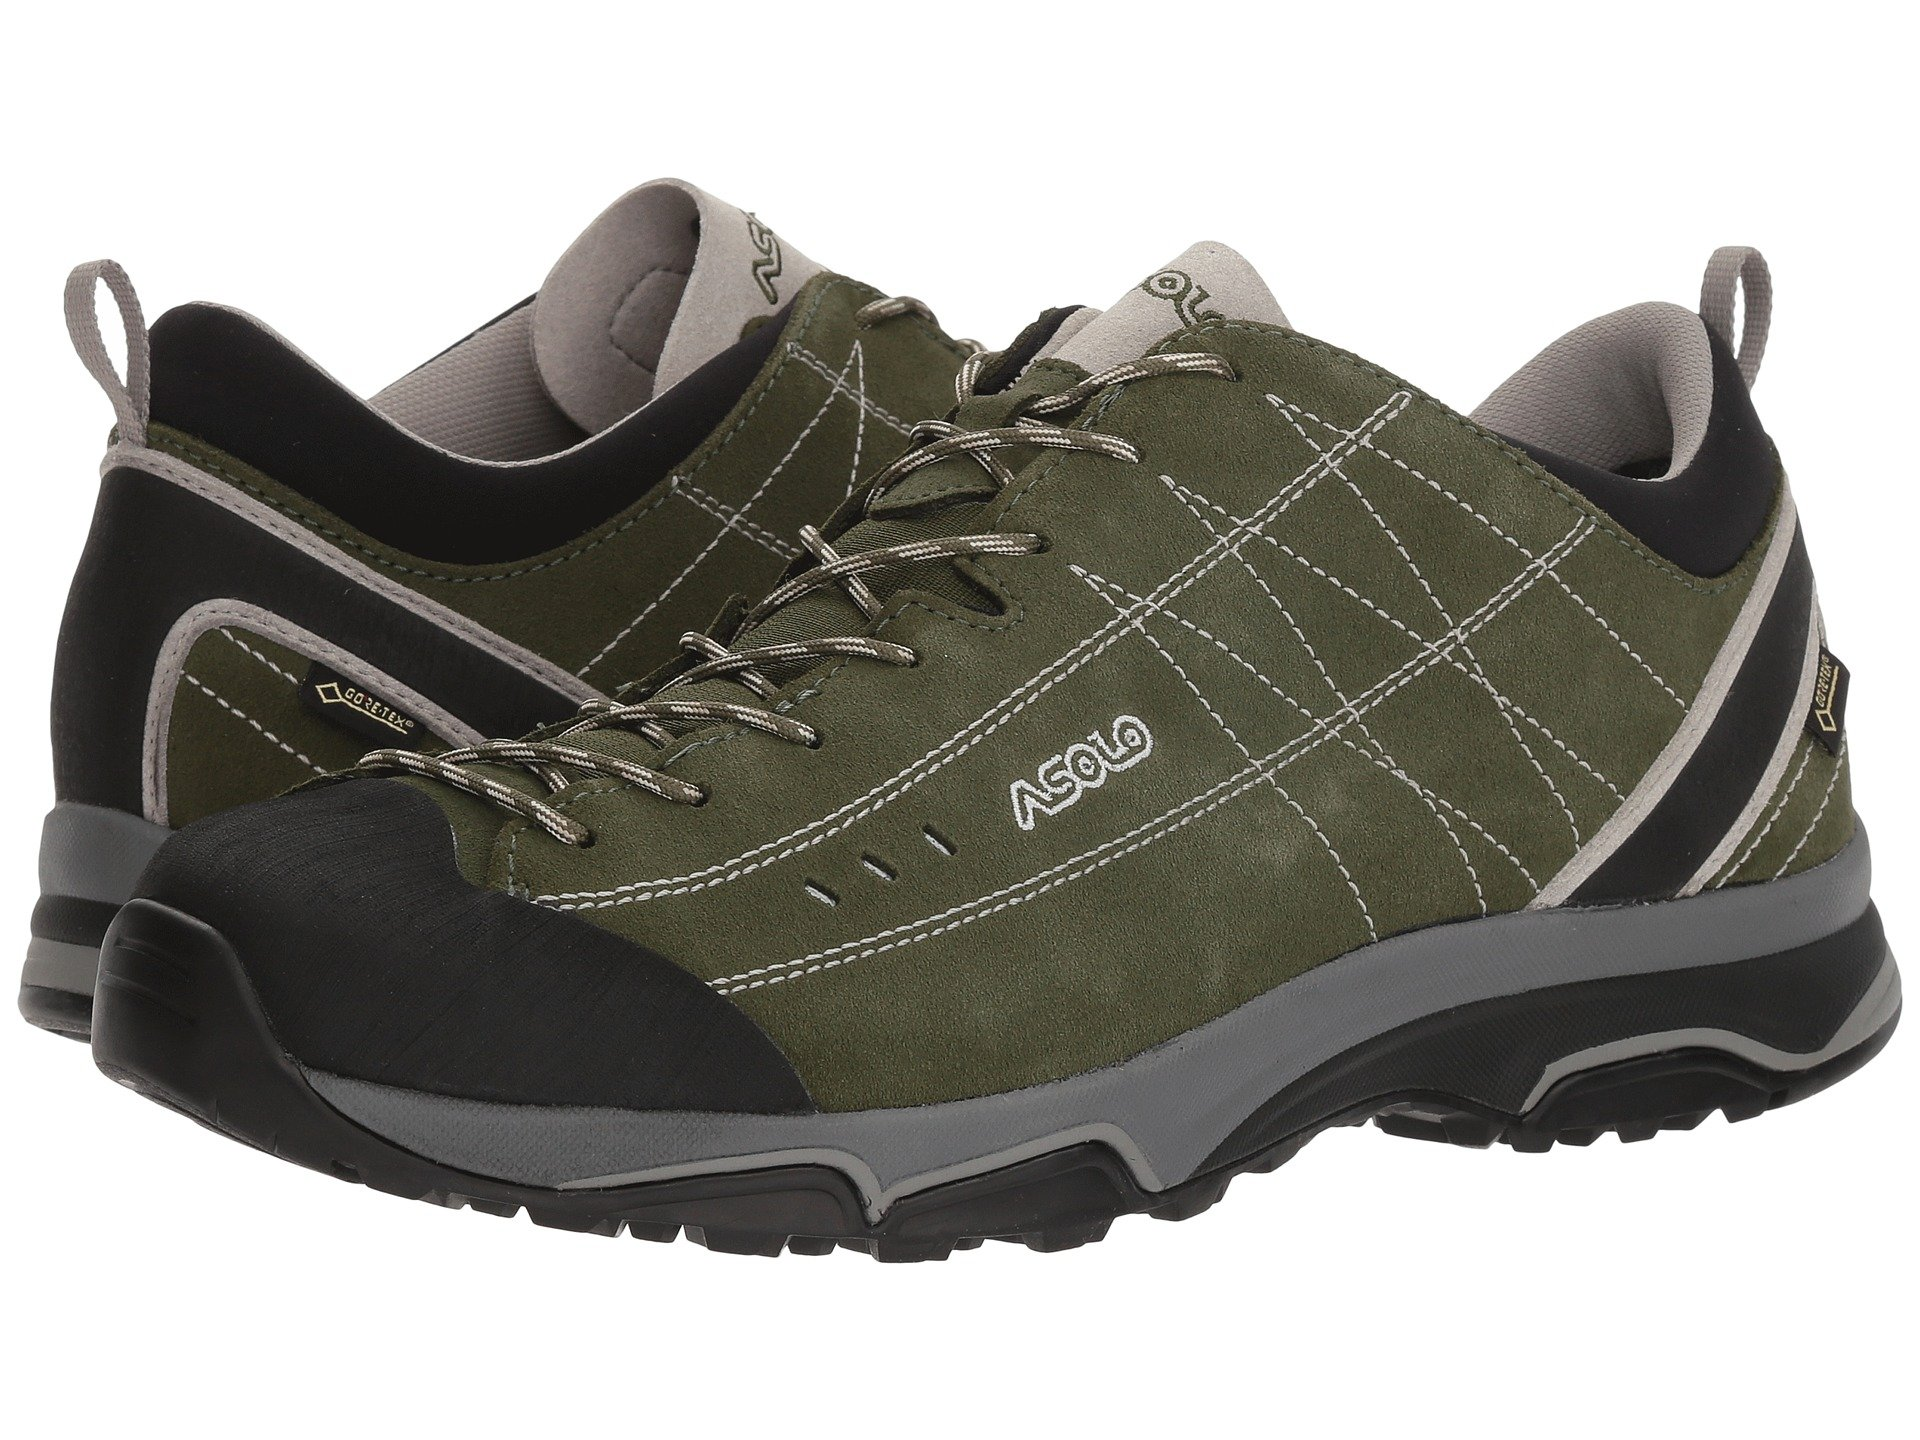 Fq55fwb Silver Green Rifle Sneakers Nucleon Athletic Asolo Shoes Gv Amp; BedxoC